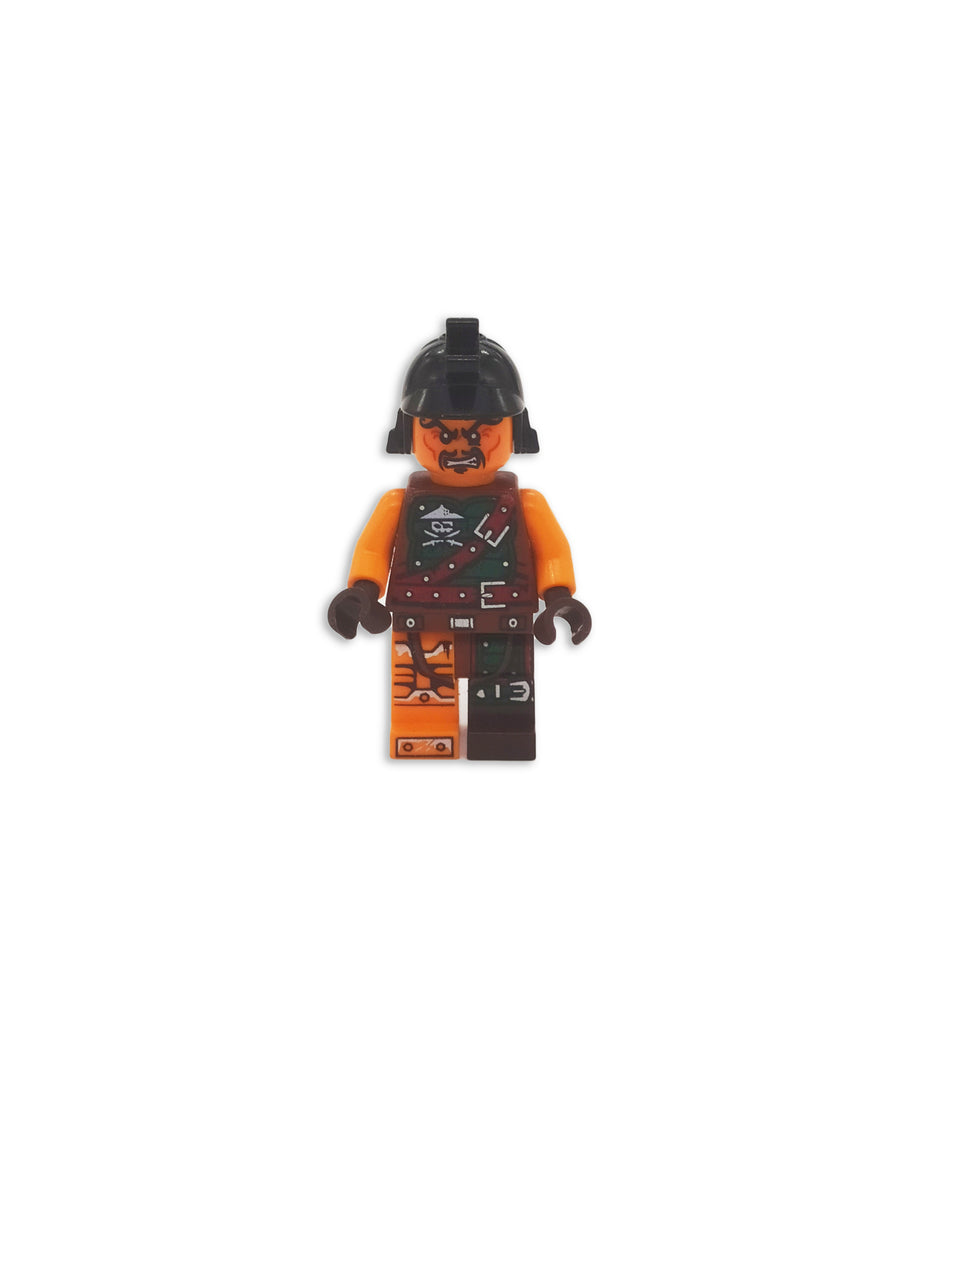 Scary Lego Warrior with accessories